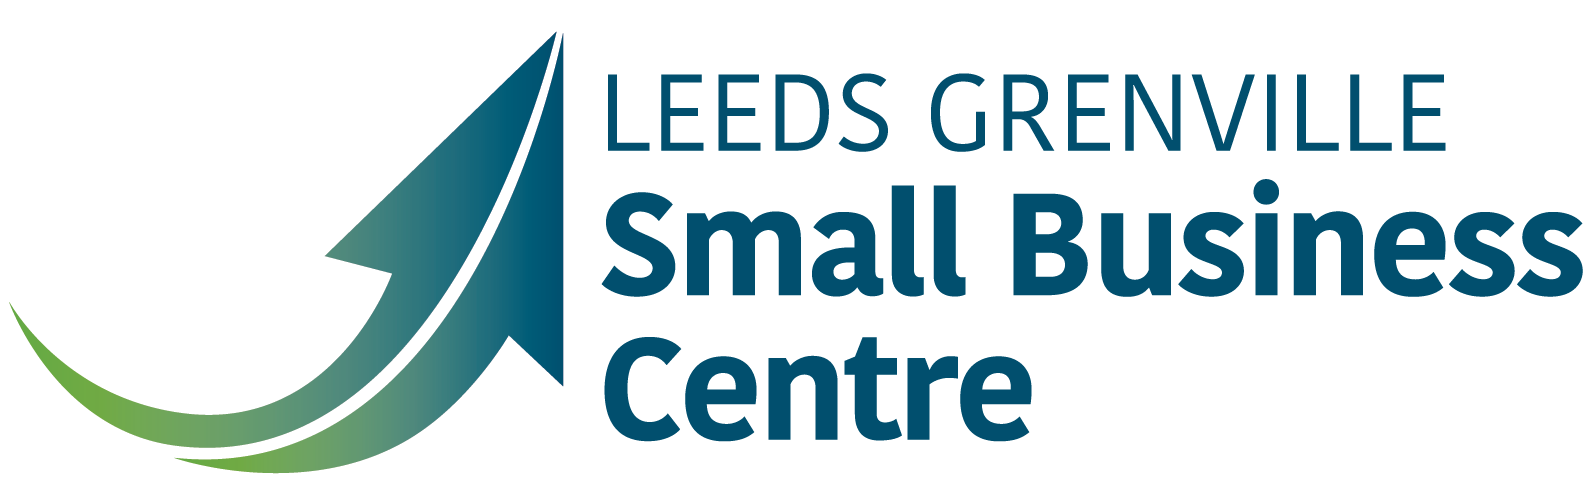 Leeds and Grenville Small Business Centre